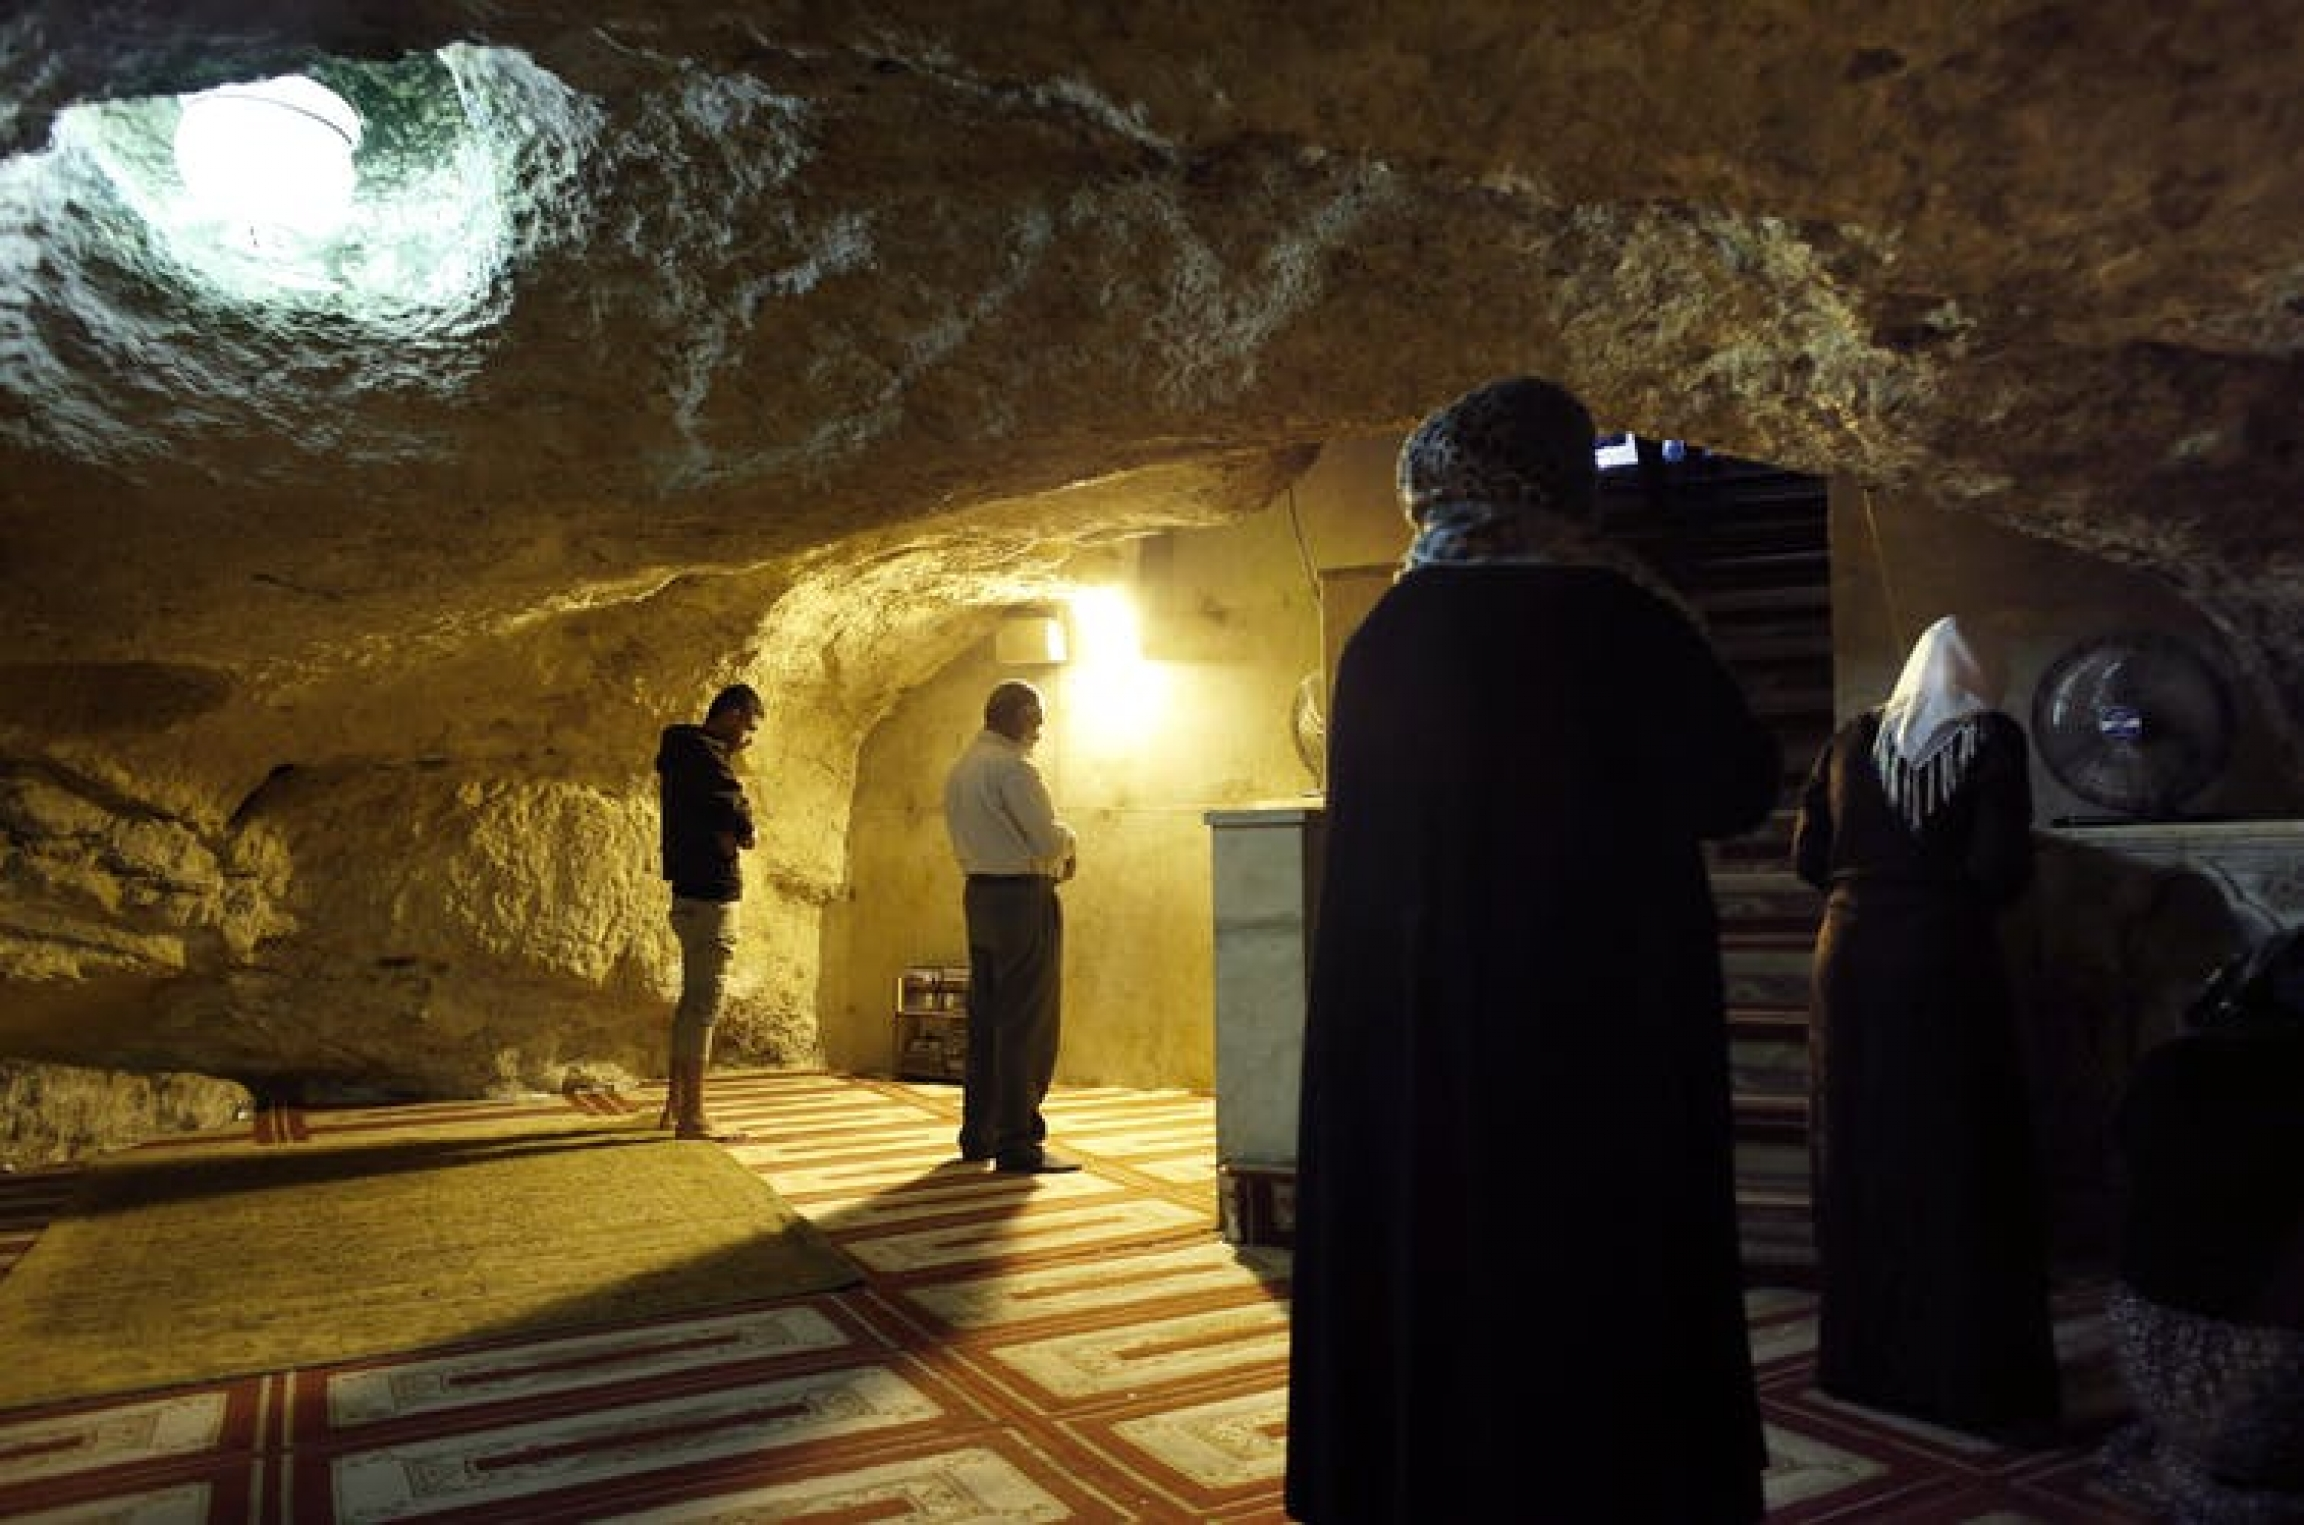 Several Muslims pray facing Mecca before a rough-stone niche in the wall